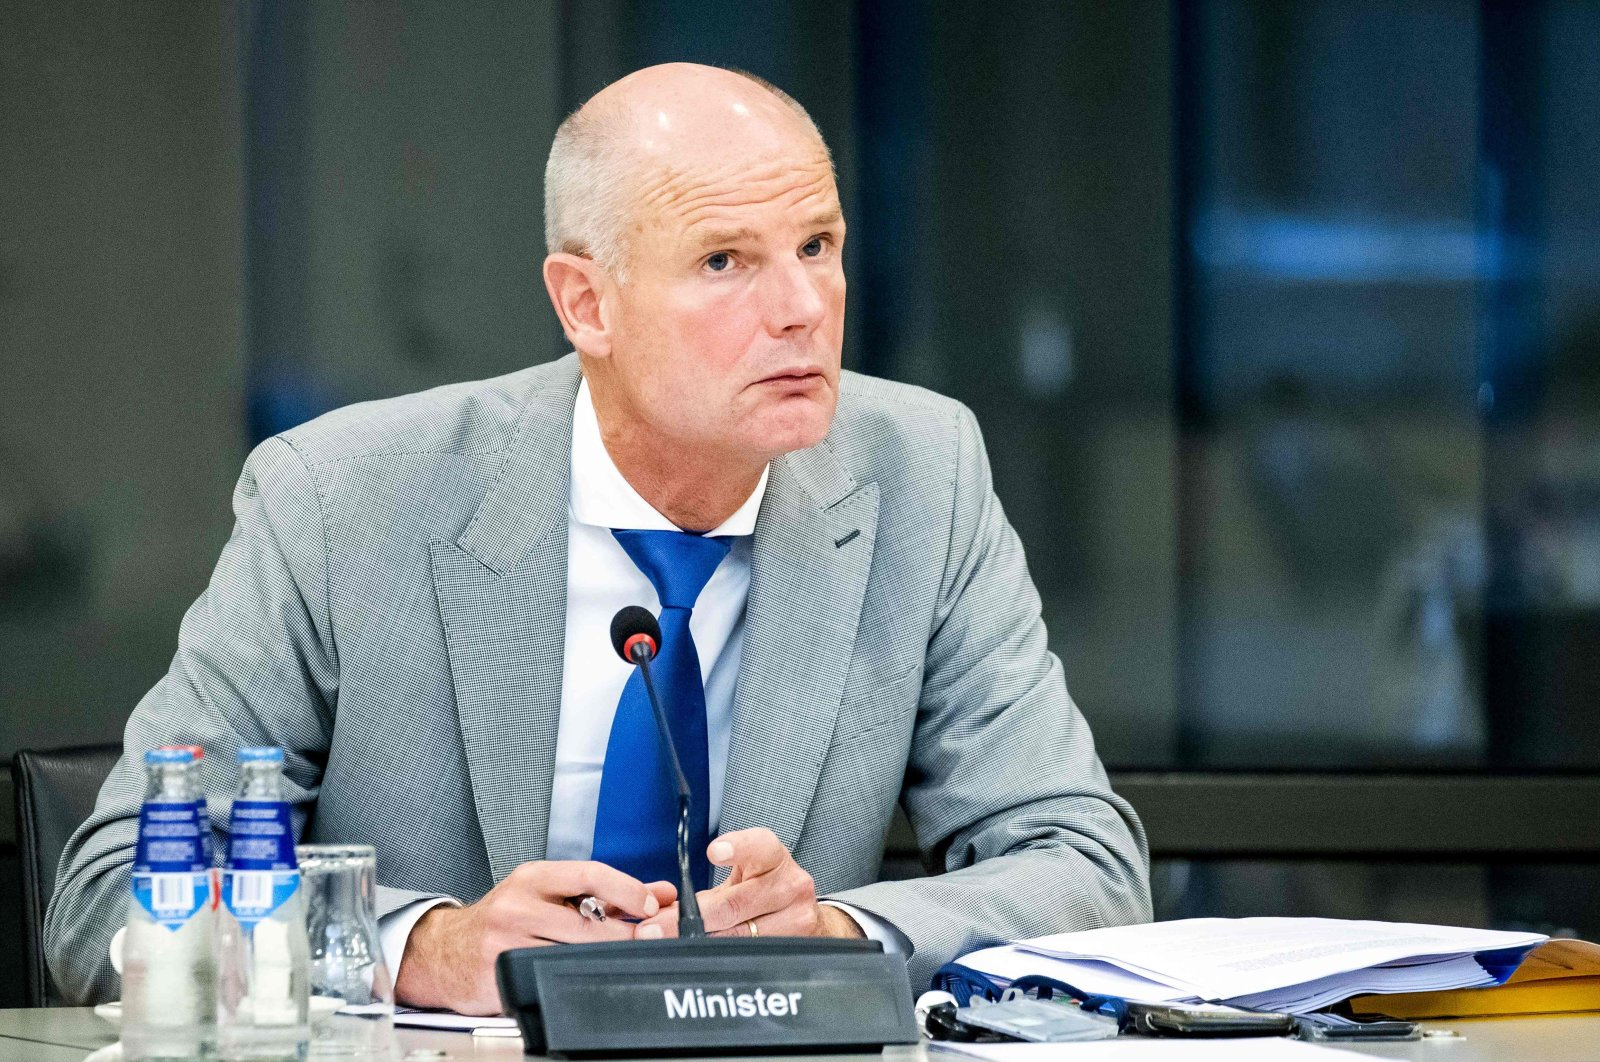 Dutch Minister of Foreign Affairs Stef Blok attends a meeting about the situation in Belarus in the House of Representatives in The Hague, the Netherlands, on Sept. 14, 2020. (AFP Photo)